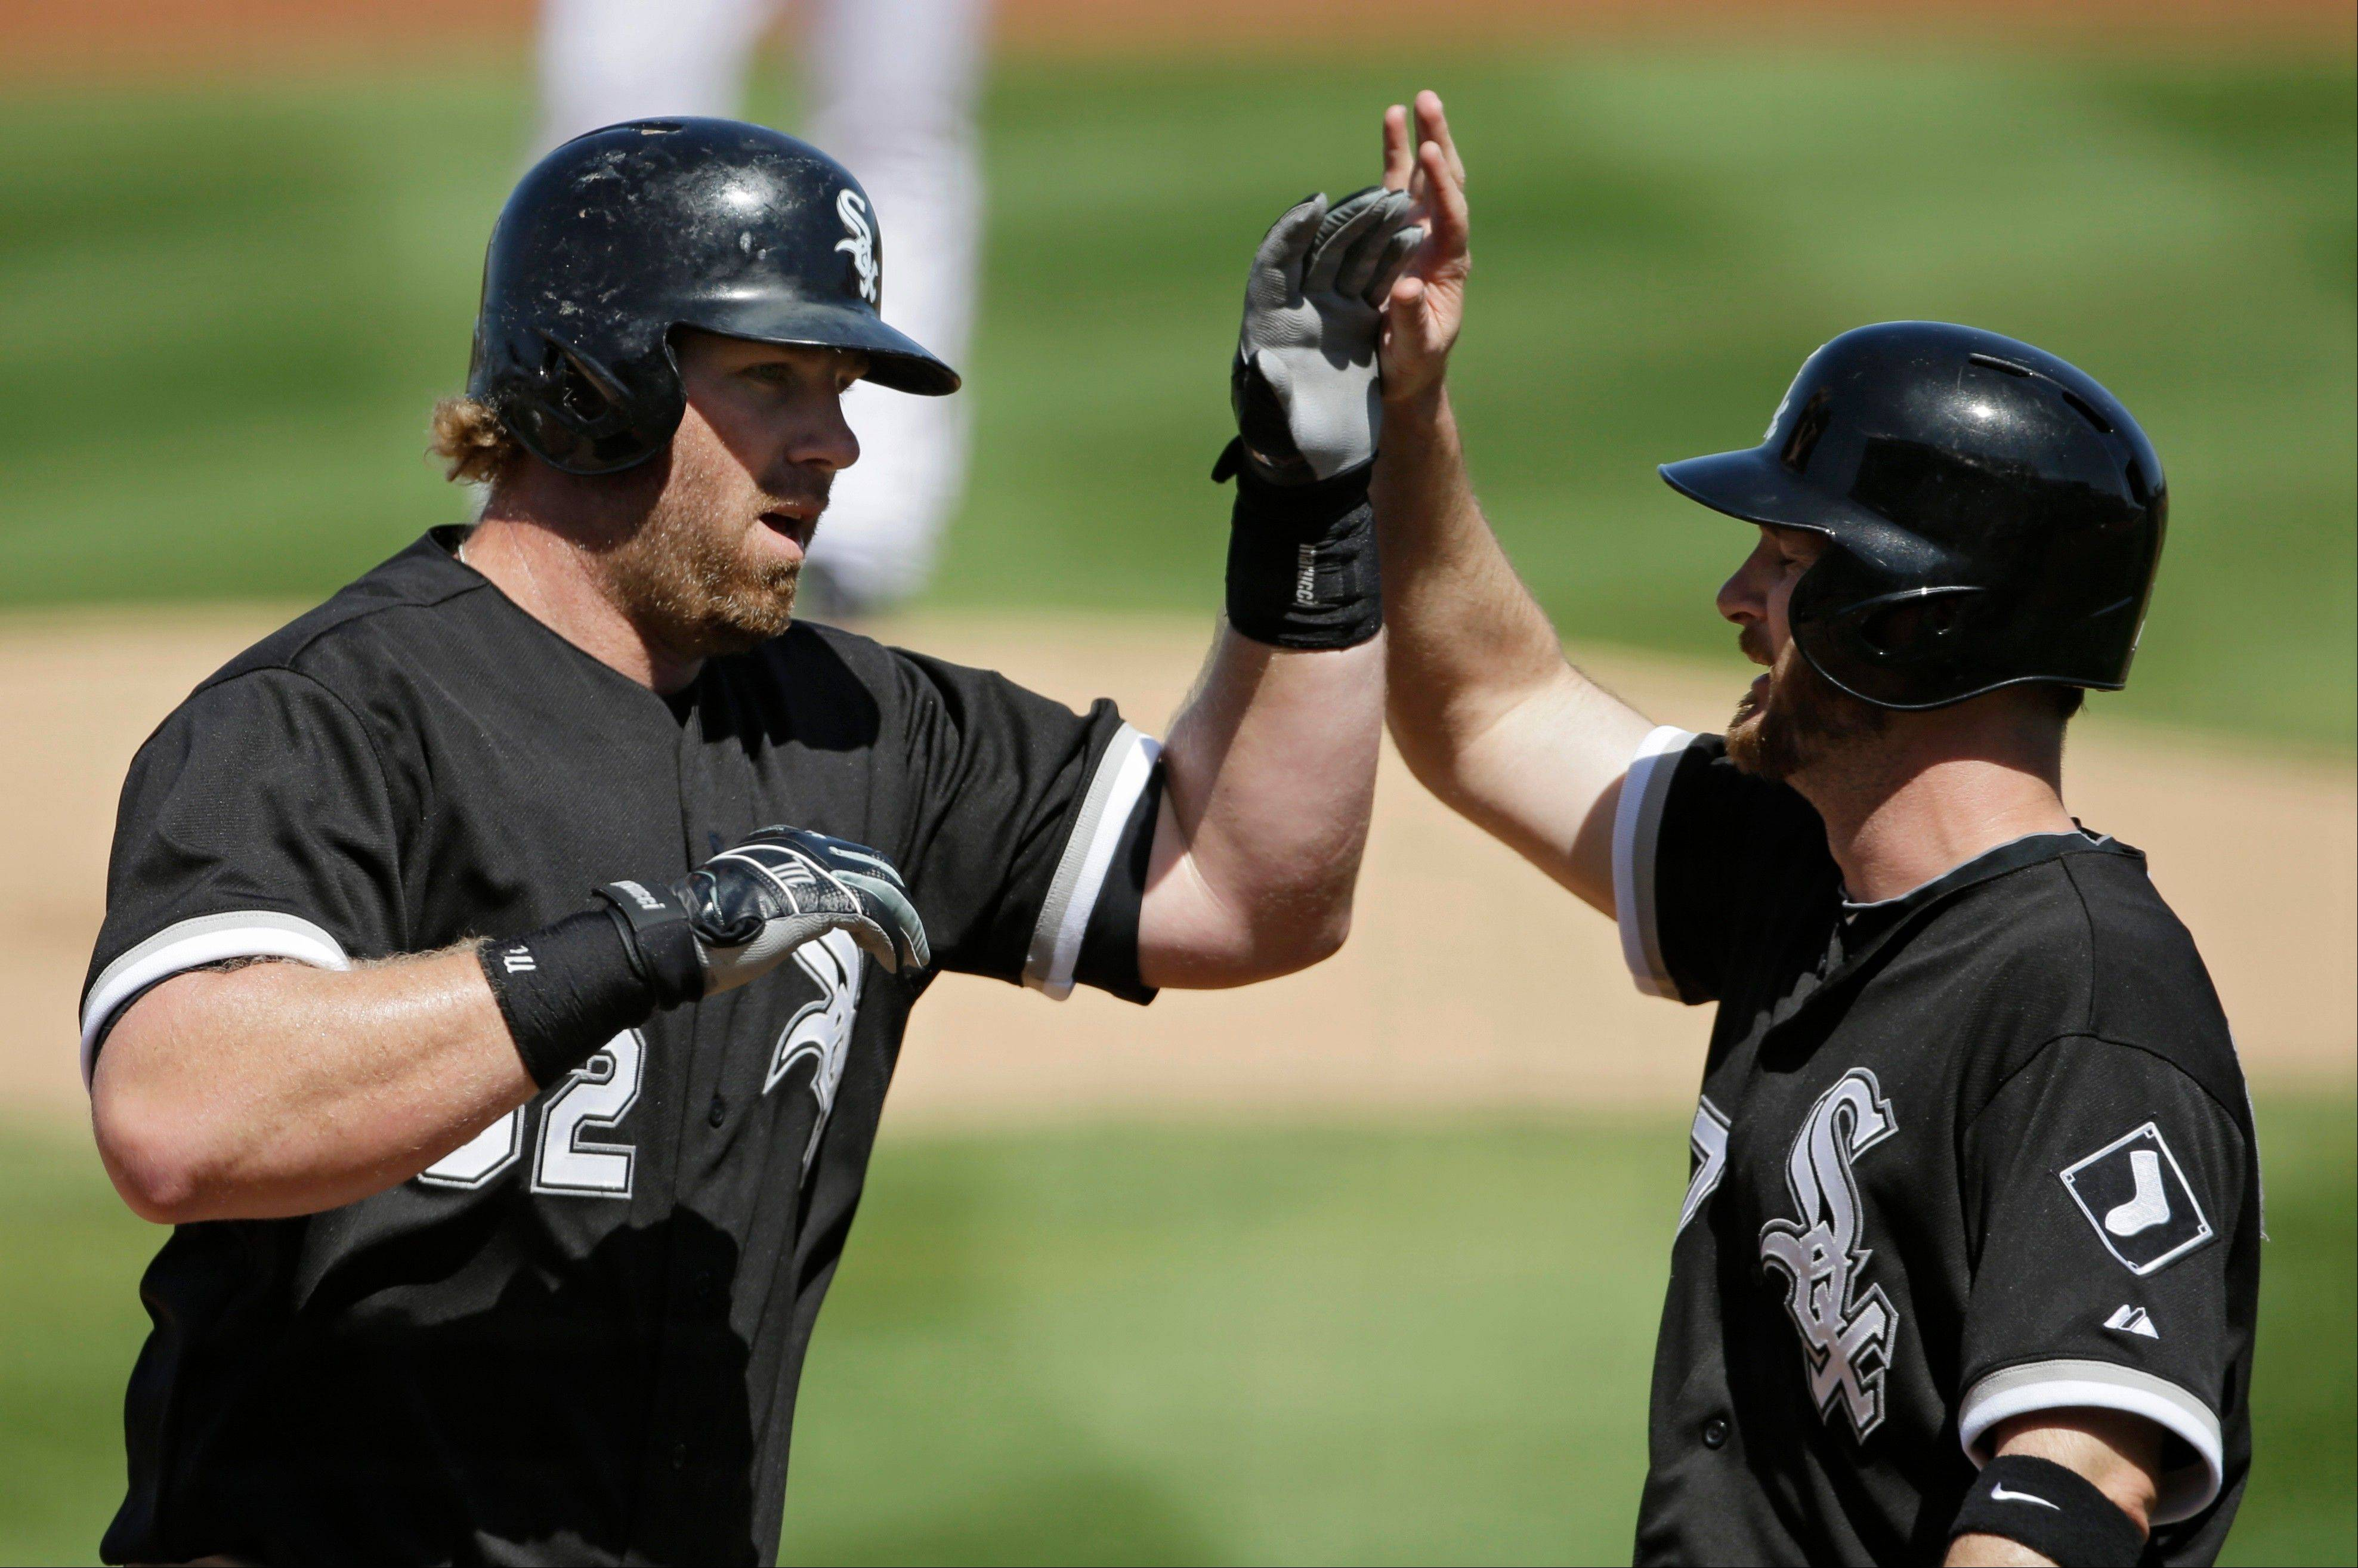 The White Sox are hoping that newcomer Jeff Keppinger, right, is able to set the table as the No. 2 hitter and provide more RBI opportunities for Alex Rios, Adam Dunn and Paul Konerko.